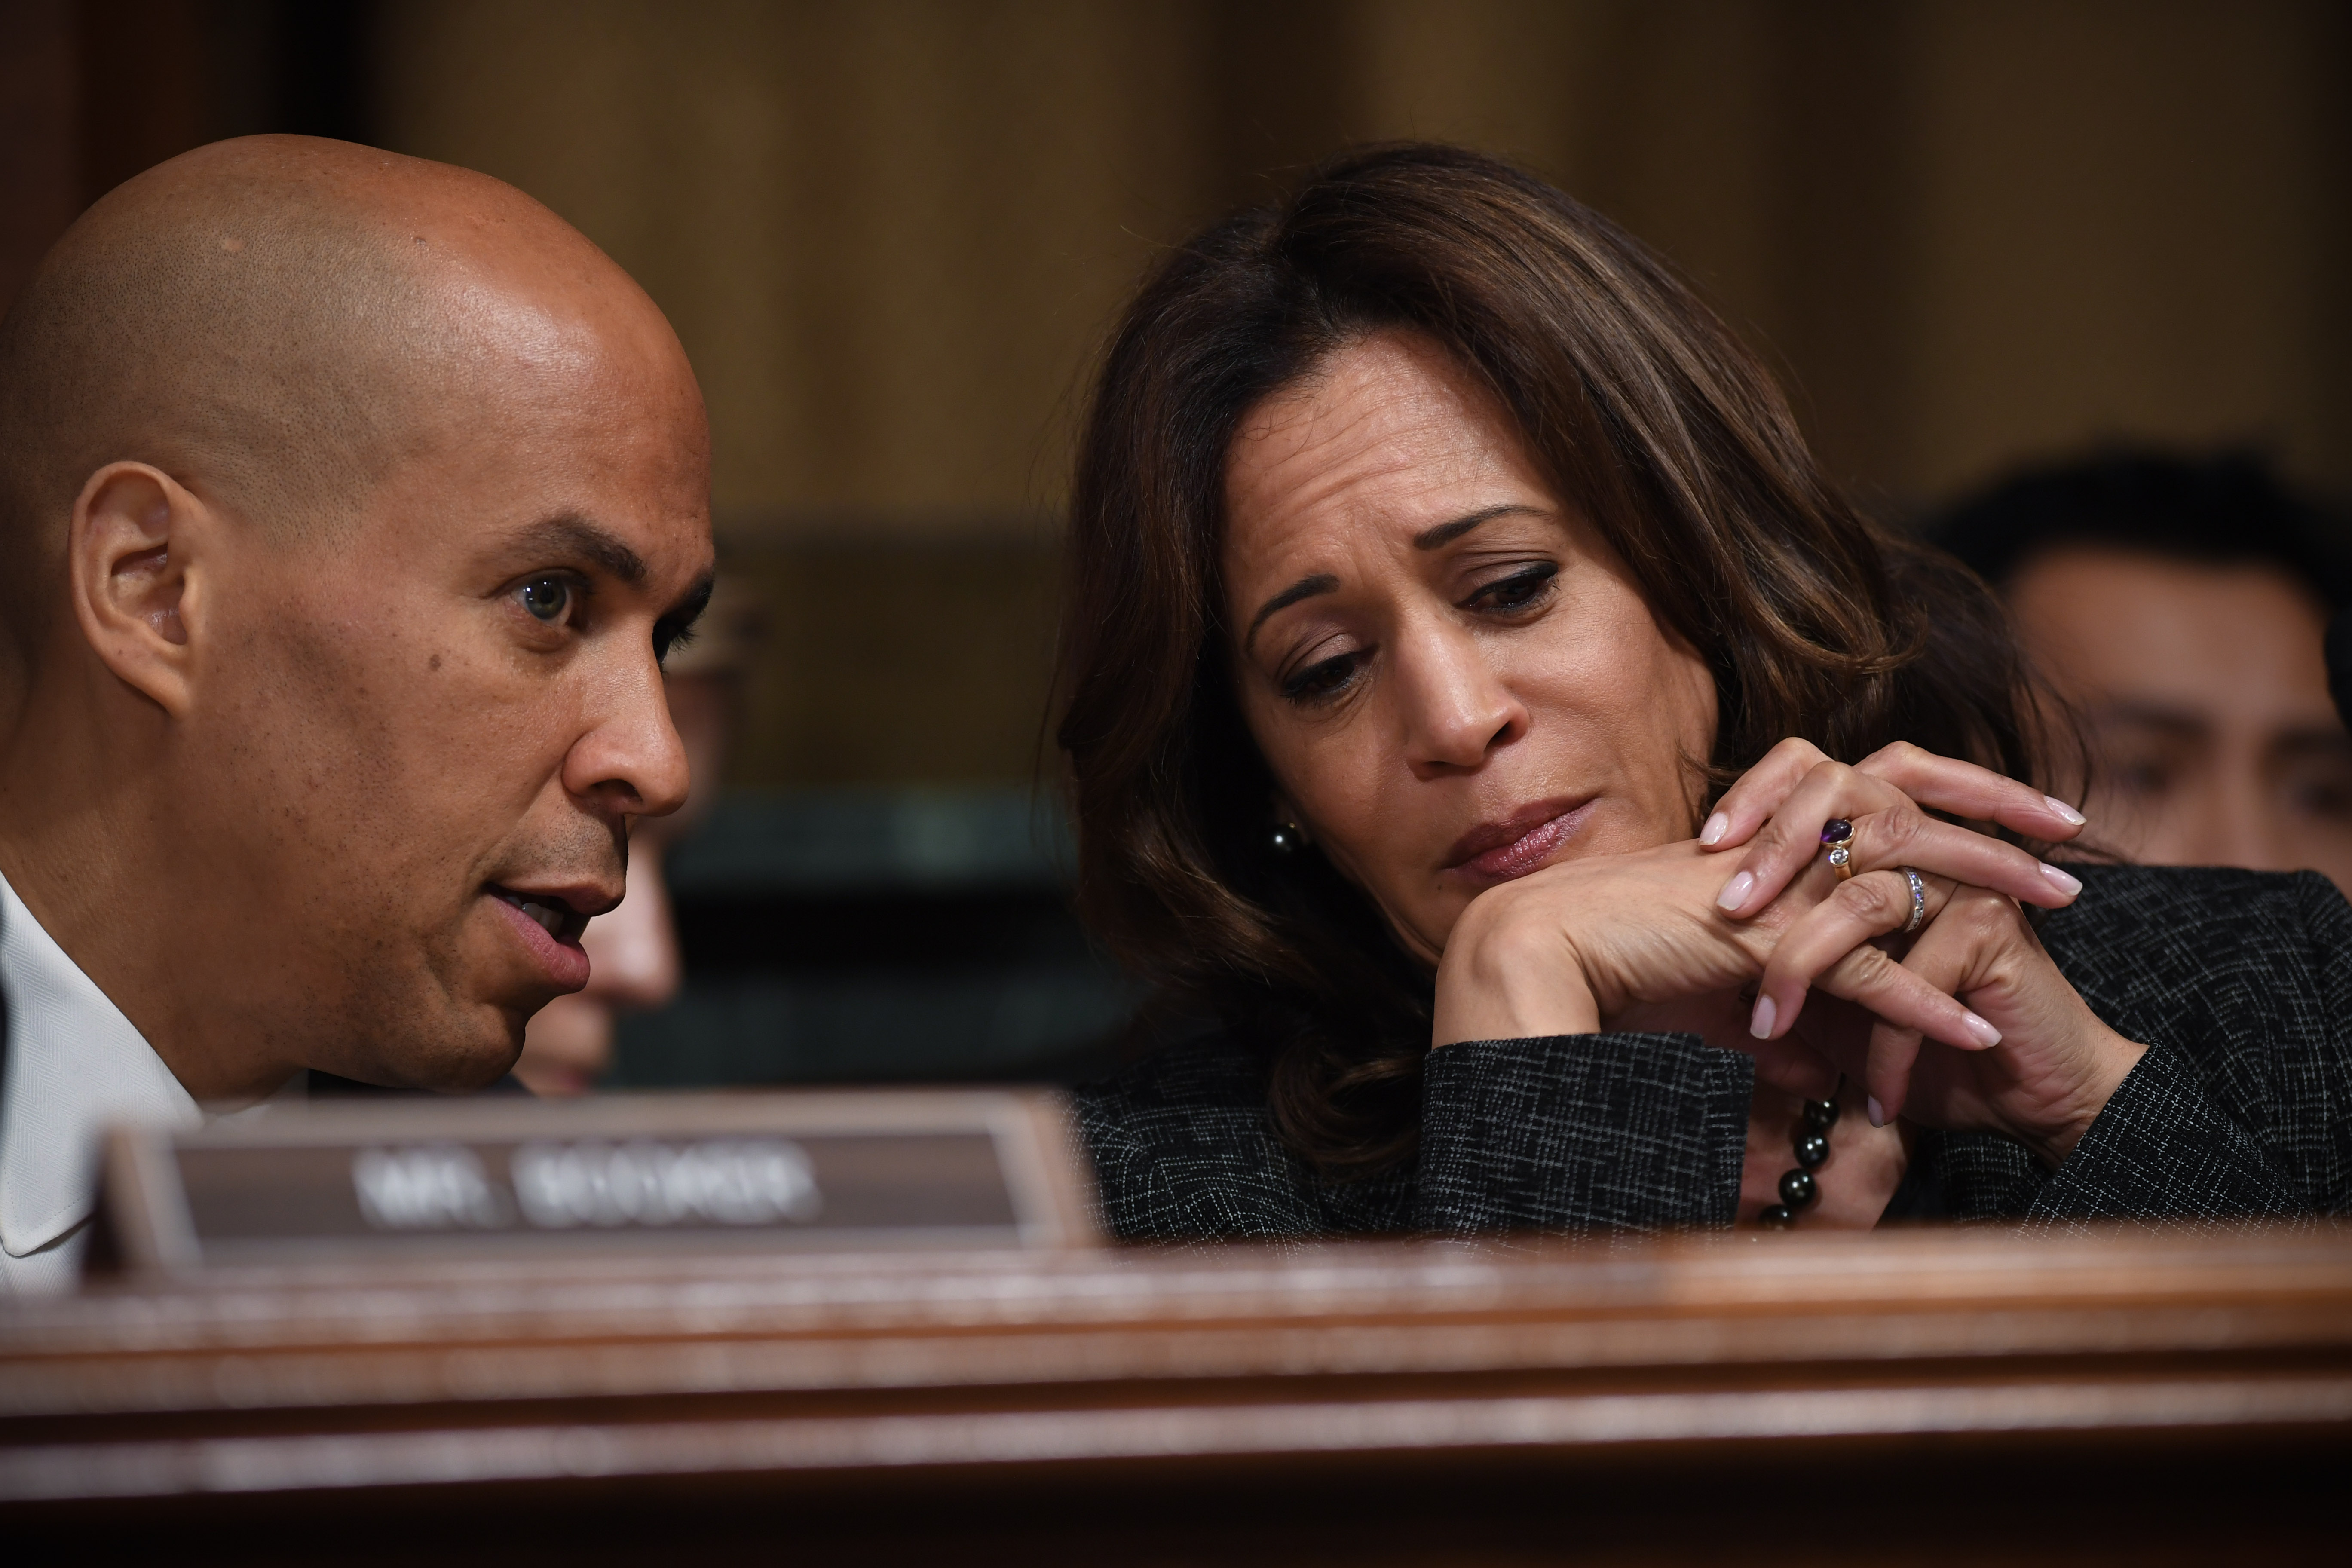 US Senators Cory Booker (L) and Kamala Harris (R) chat on Capitol Hill in Washington, DC, September 27, 2018. (Photo SAUL LOEB/AFP/Getty Images)